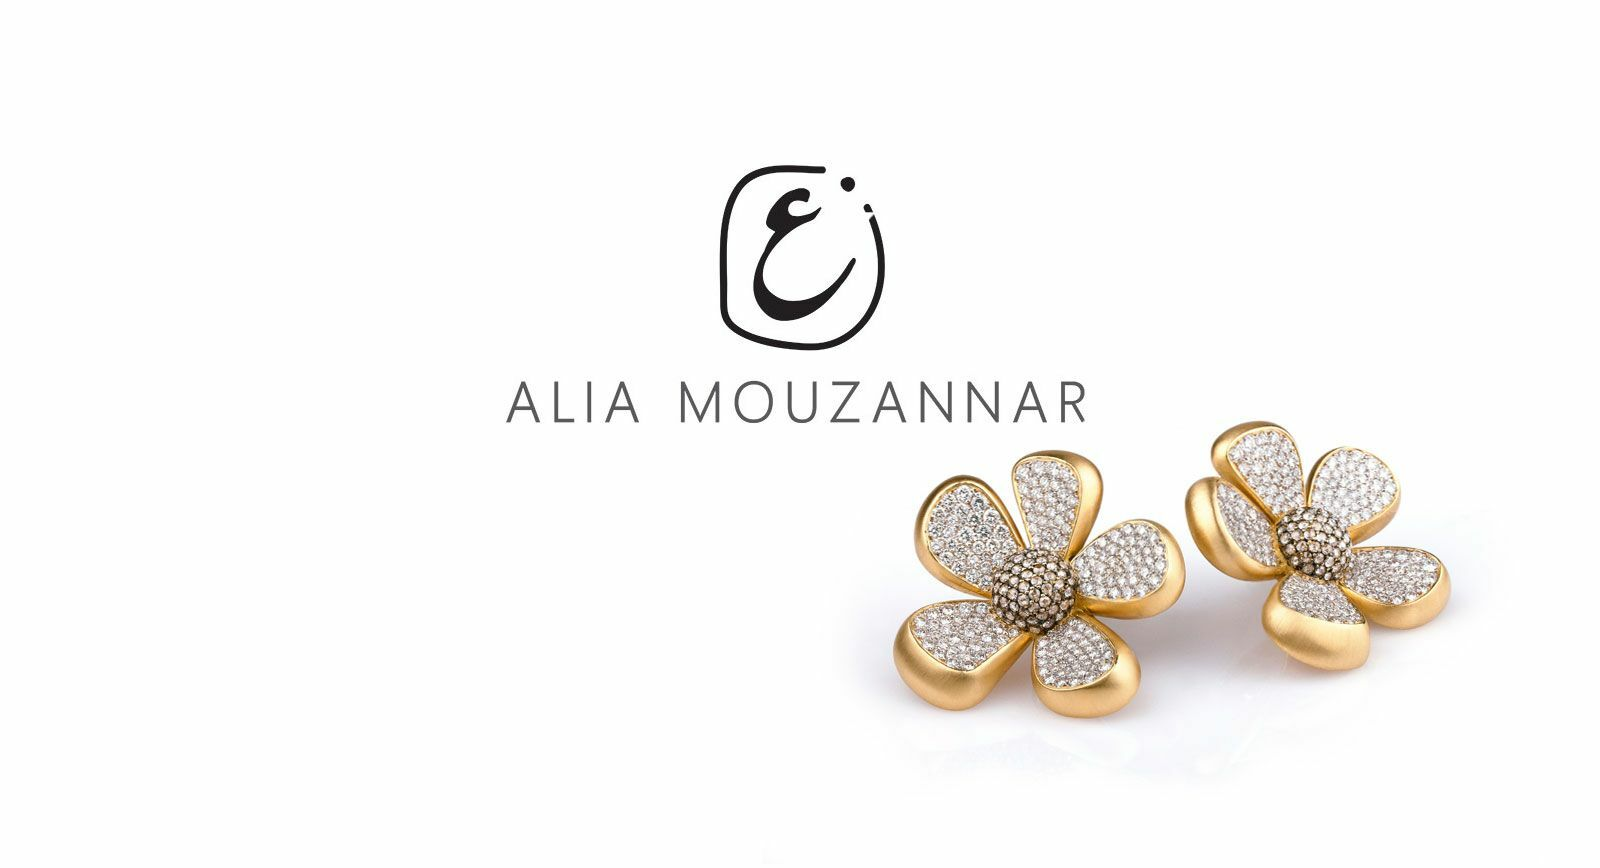 Alia Mouzannar's world of jewellery transformations